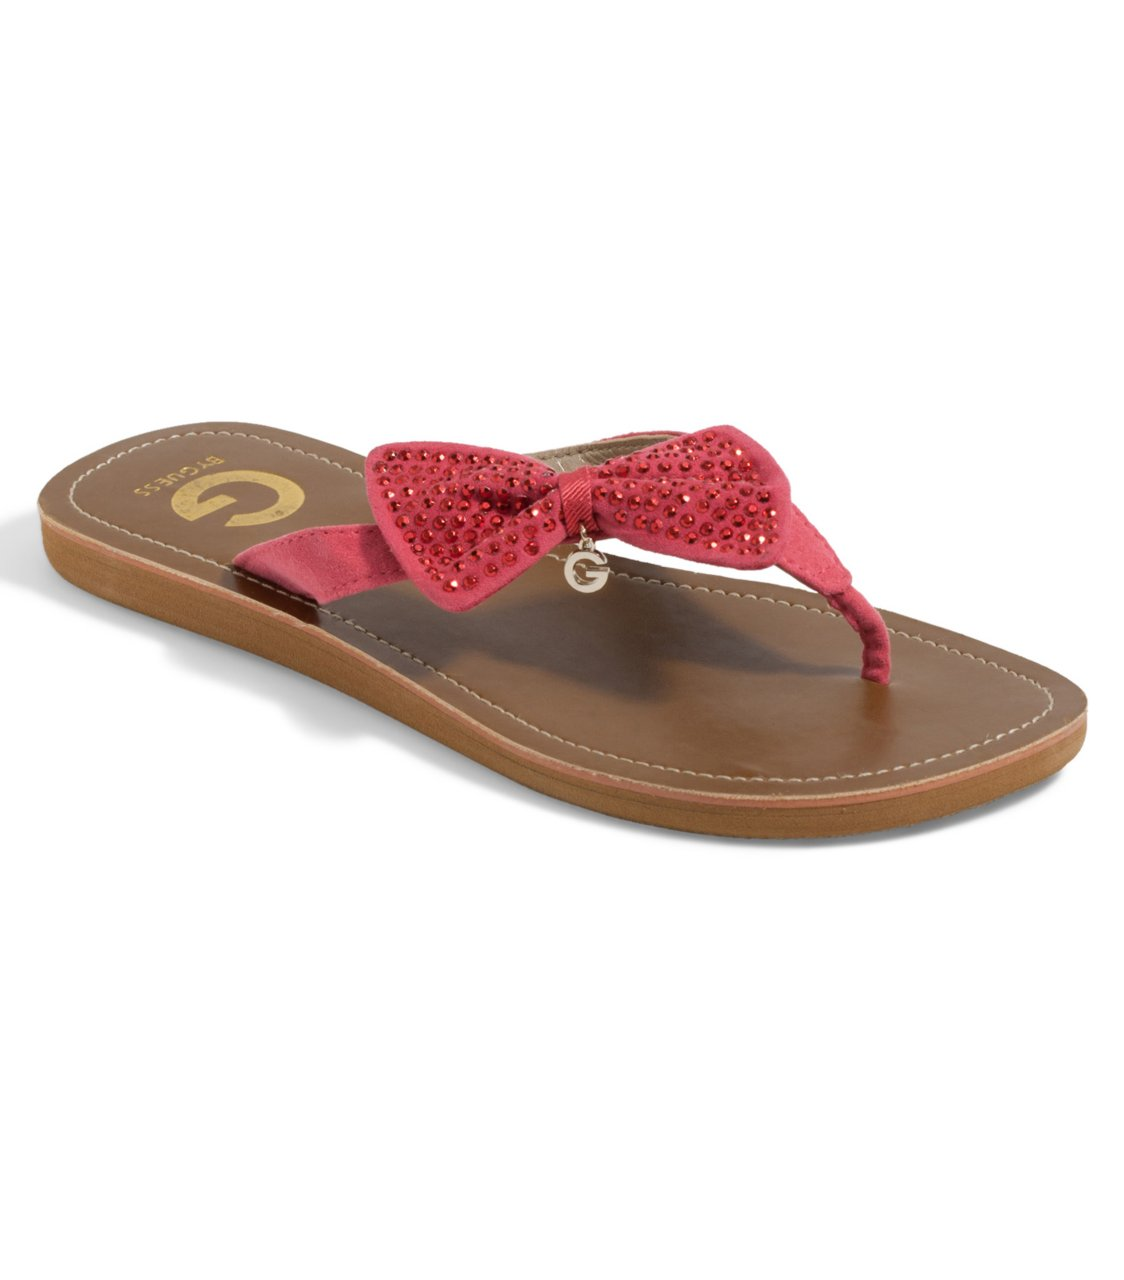 G by GUESS Keetz Flip-Flop, PINK MULTI FABRIC (7)